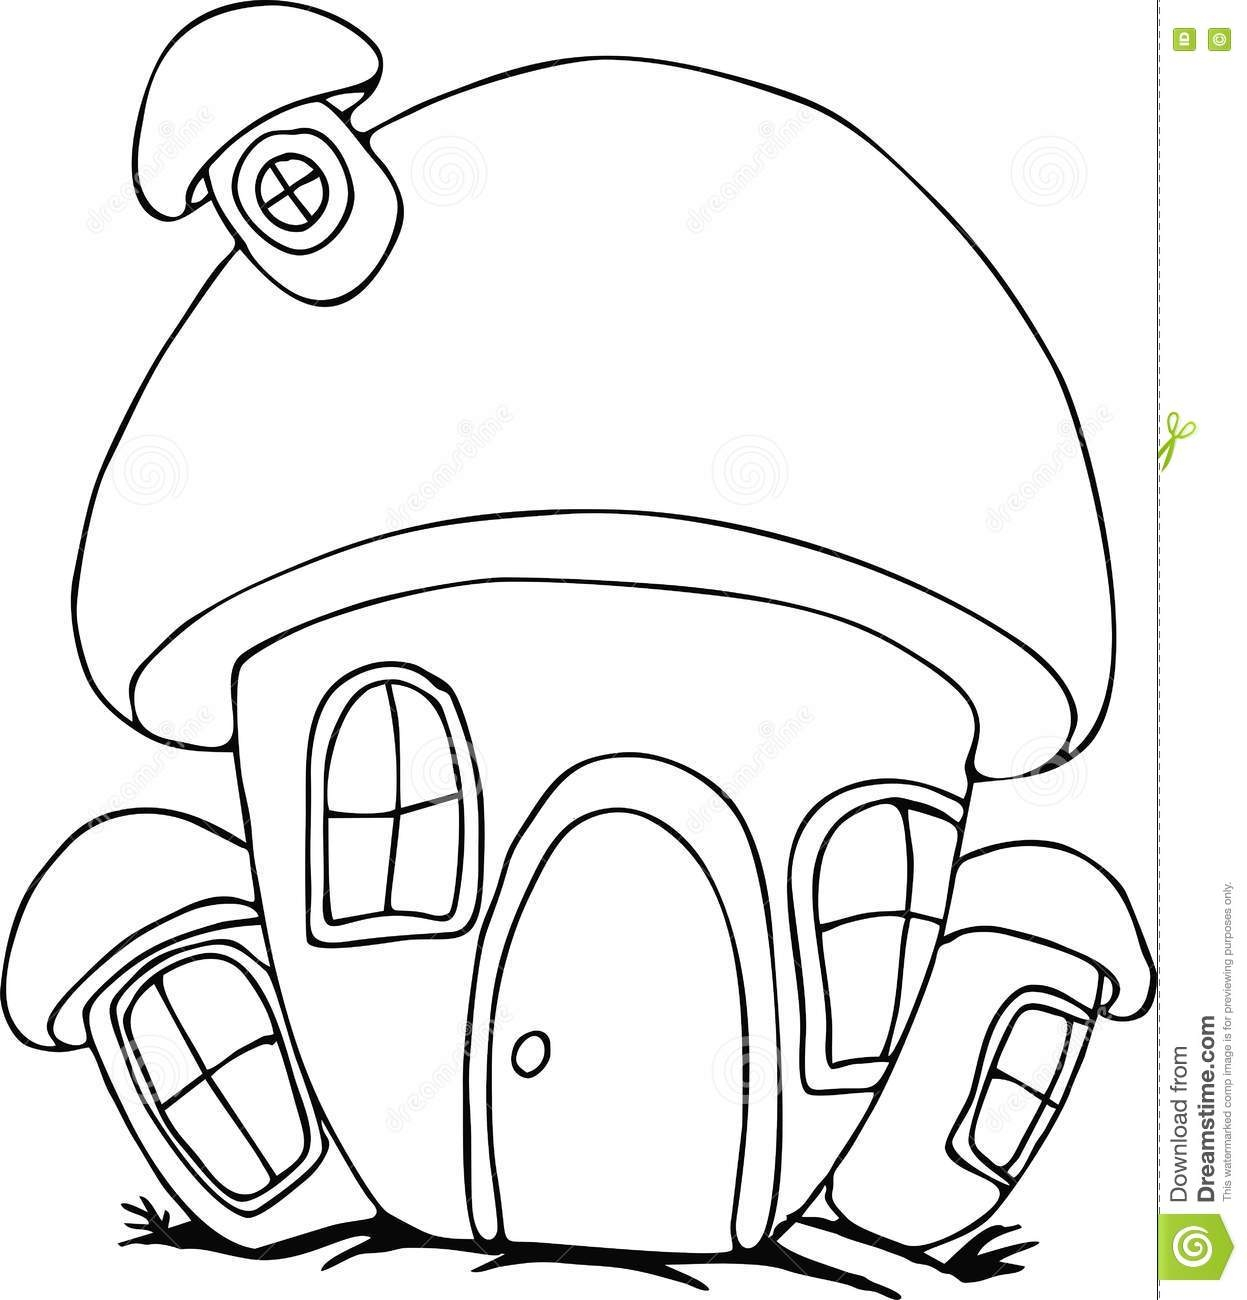 loud house coloring pages - stock illustration doodle mushroom house cartoon can be used coloring book page design image